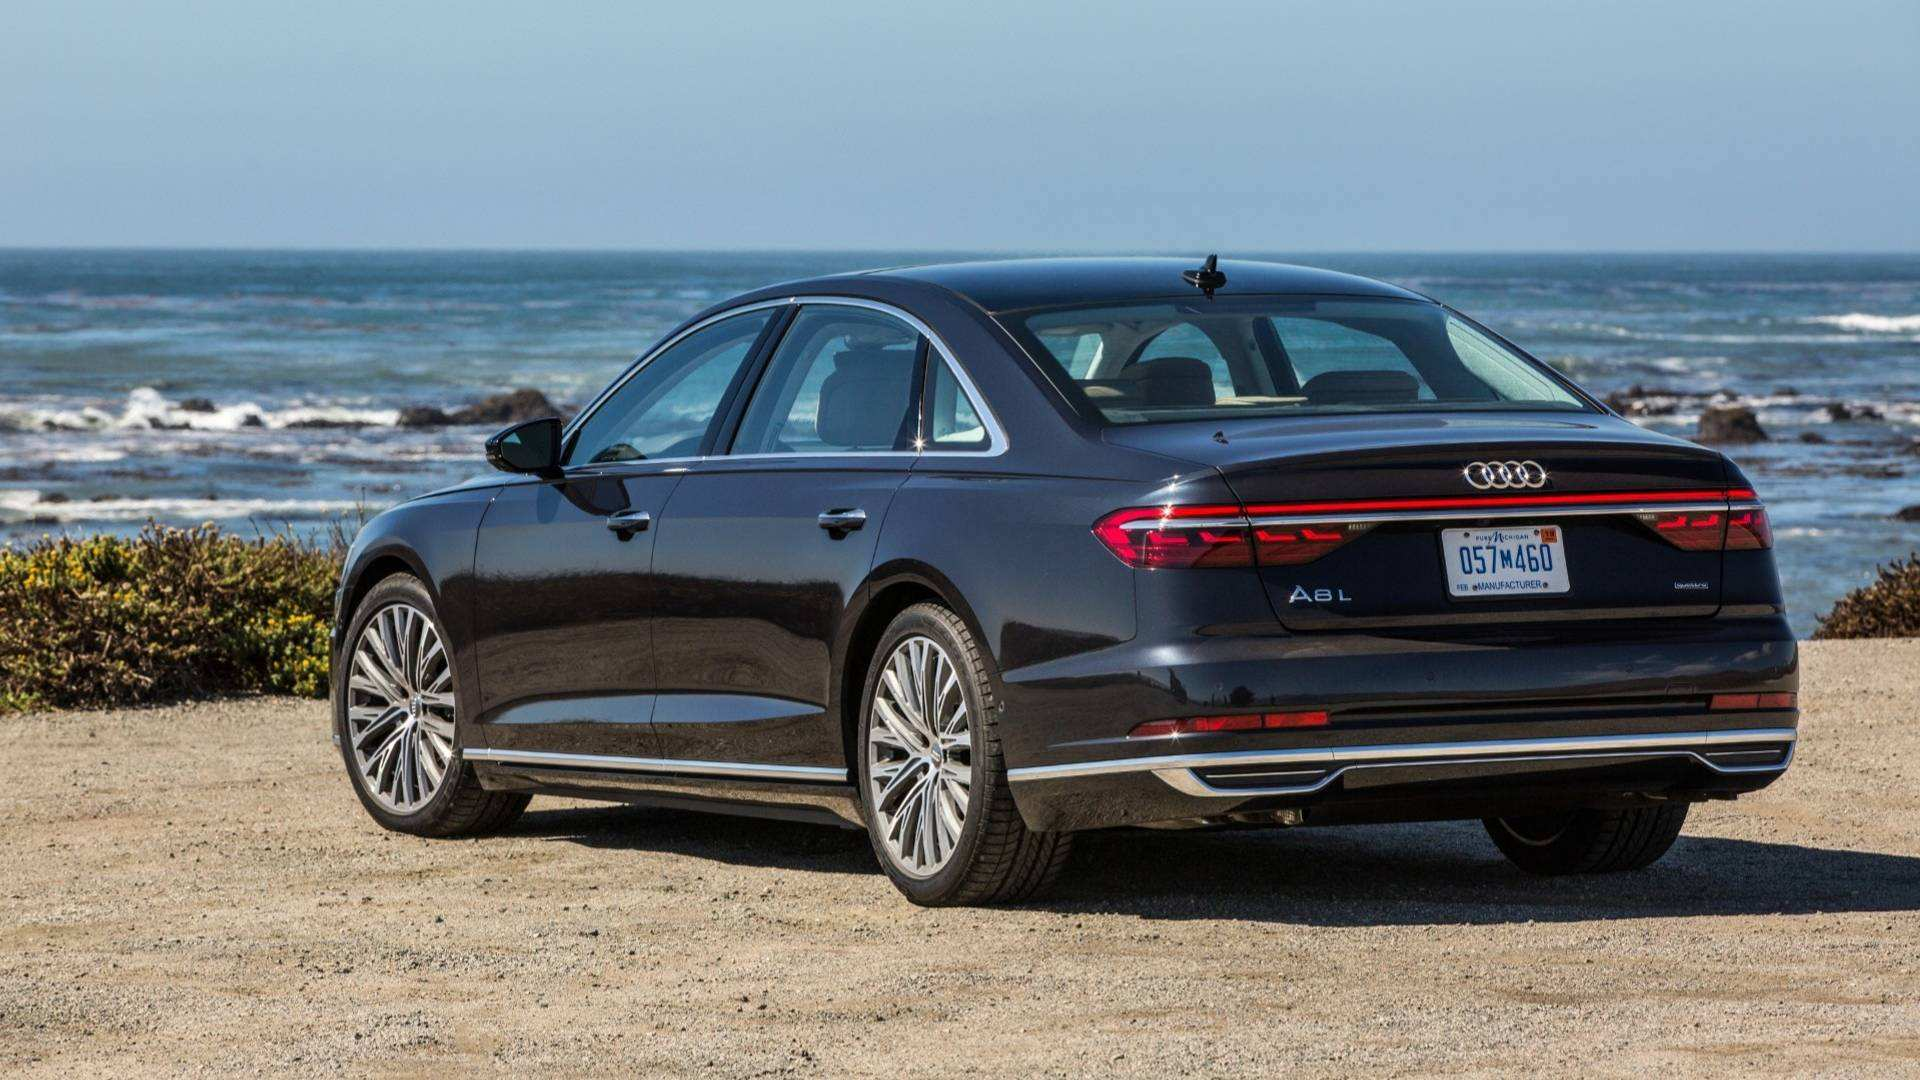 90 Best Review 2019 Audi A8 L Photos by 2019 Audi A8 L